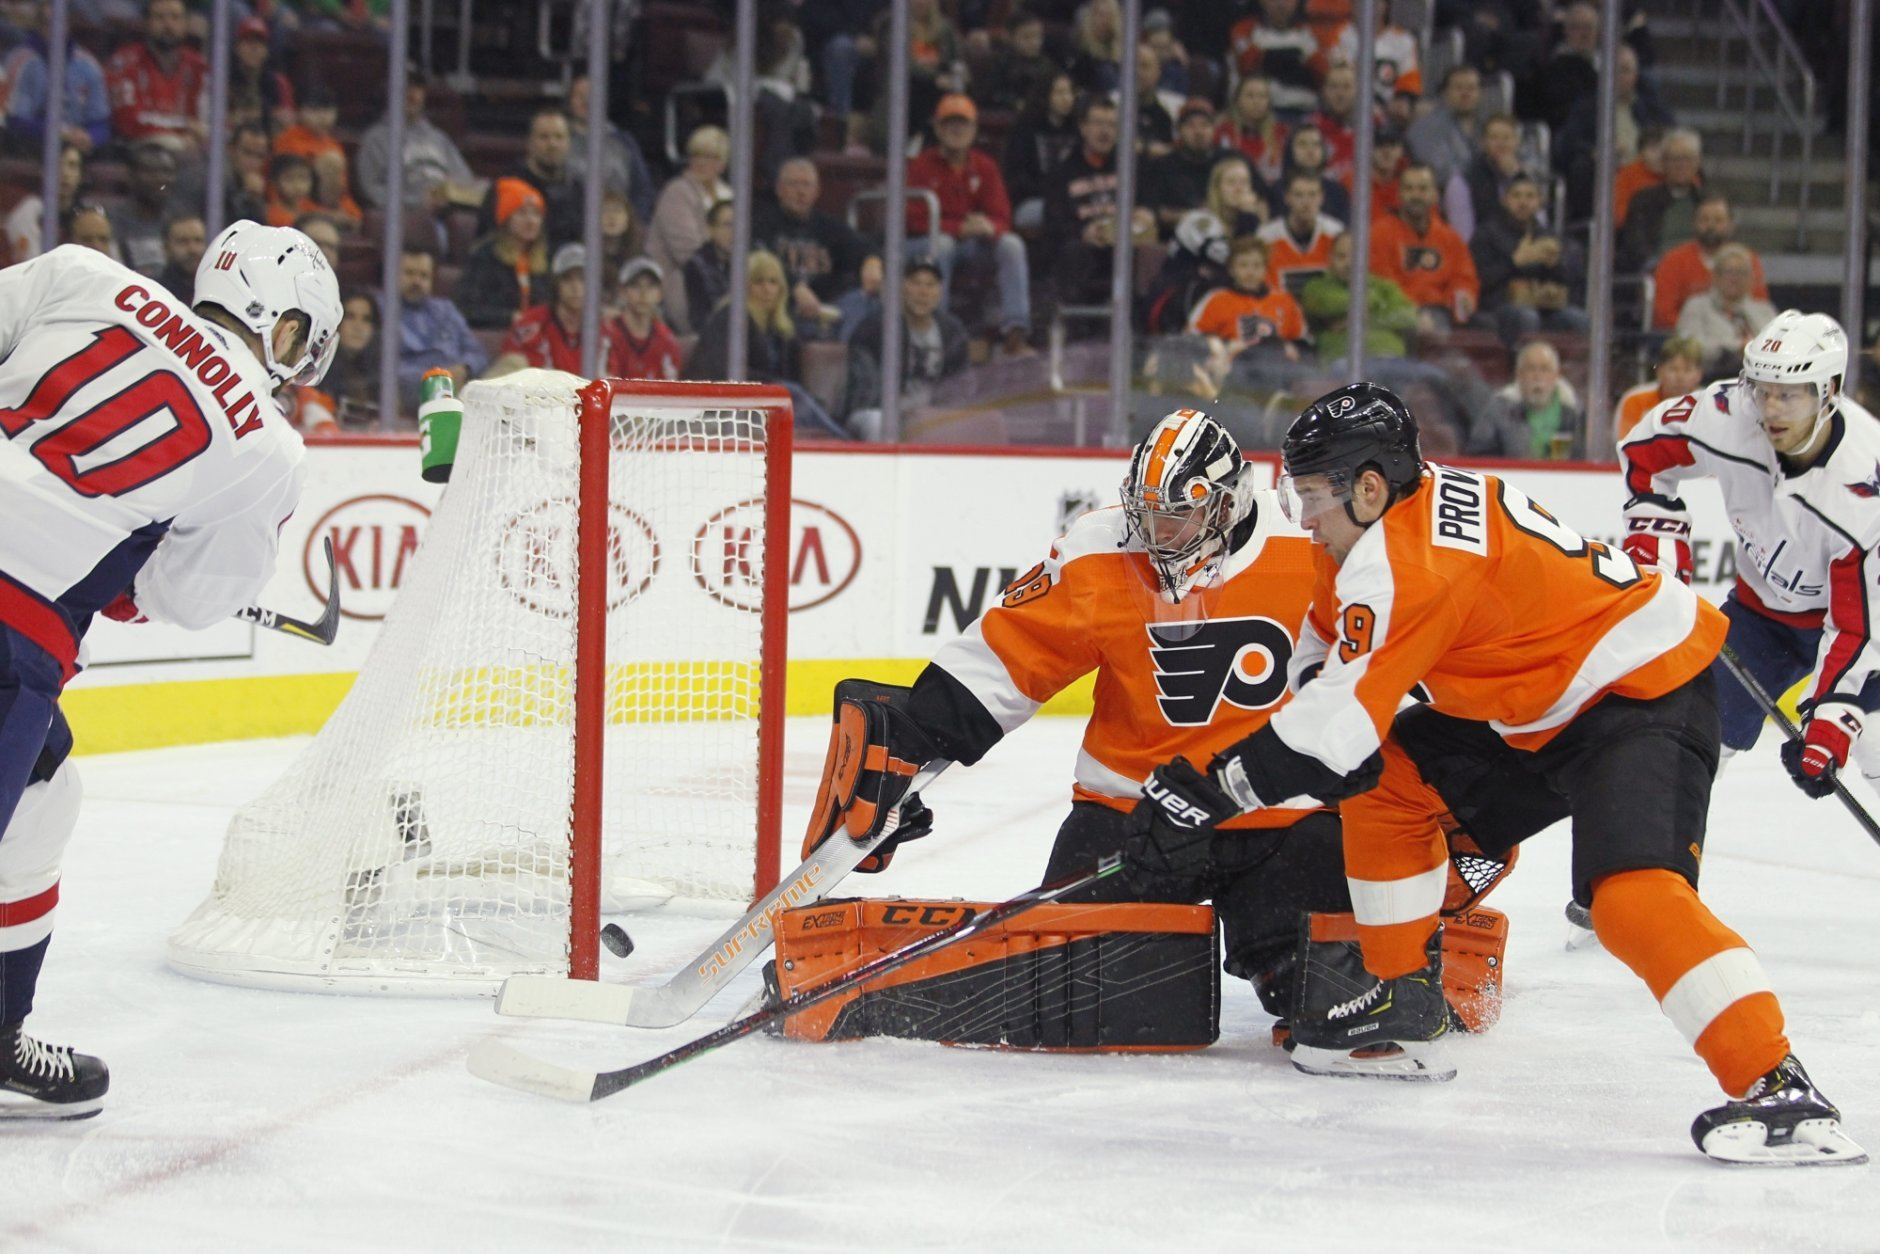 Washington Capitals' Brett Connolly, left, scores past Philadelphia Flyers goalie Carter Hart, center, and Ivan Provorov, right, during the first period of an NHL hockey game Thursday, March 14, 2019, in Philadelphia. (AP Photo/Tom Mihalek)